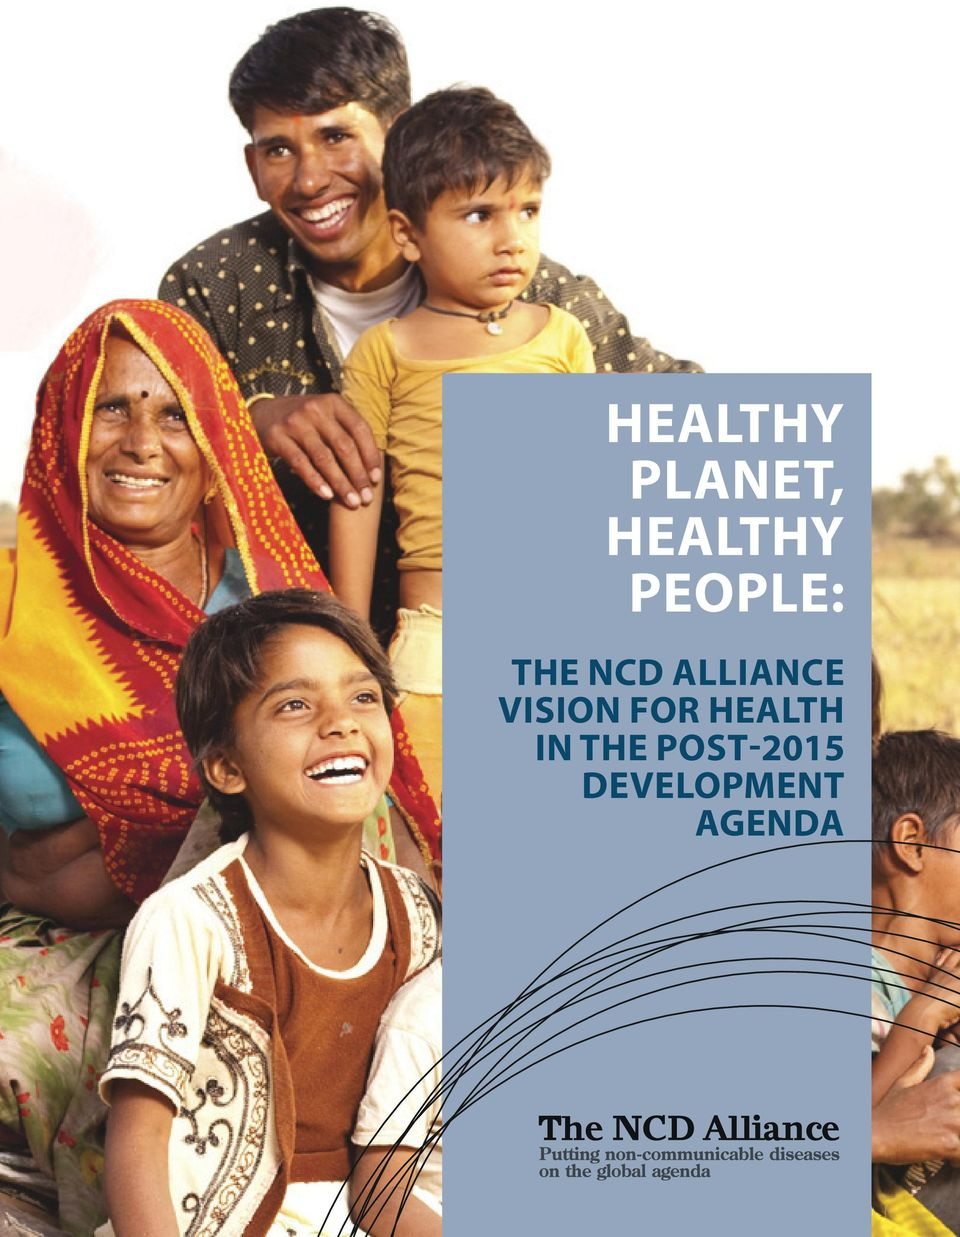 VISION FOR HEALTH IN THE